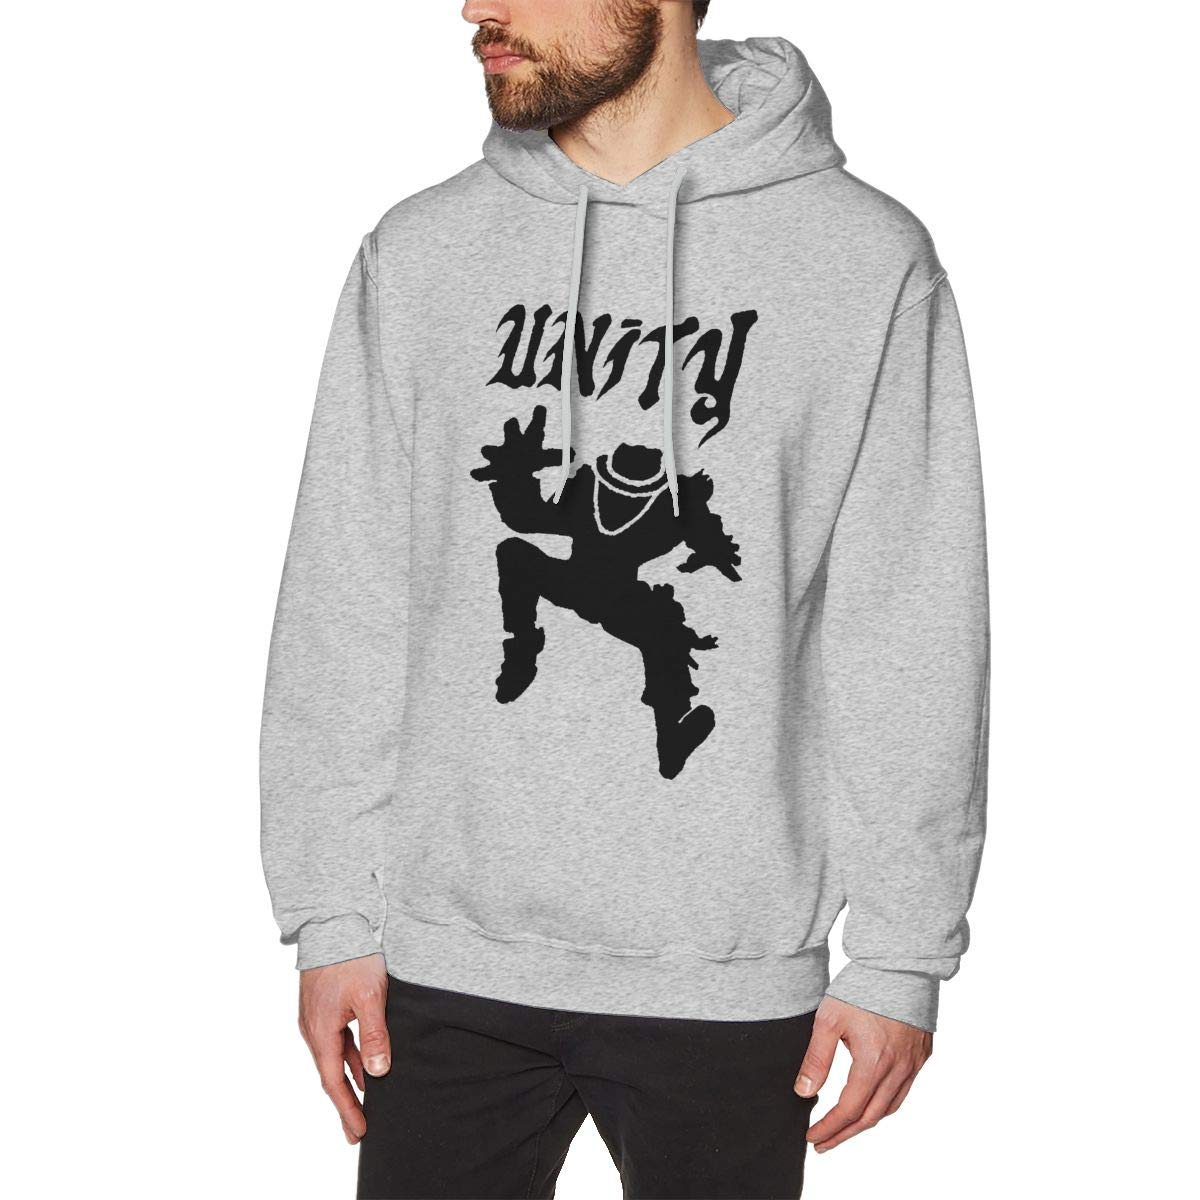 Barbaralewis Men Warmth Operation Ivy 1 Sweaters Gray with Mens Sweatshirts